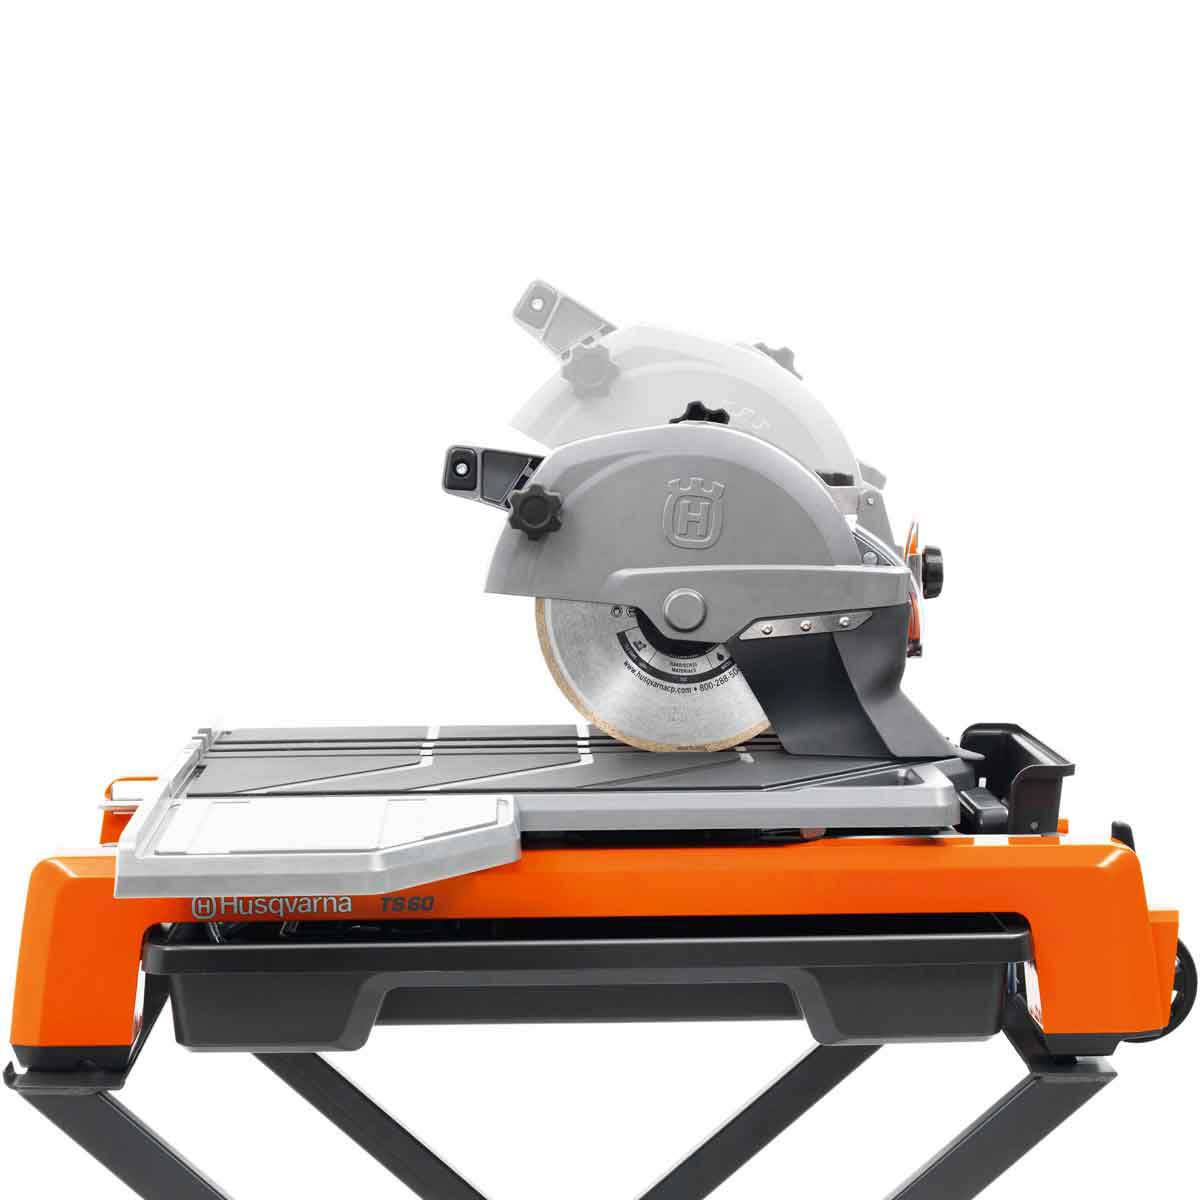 Husqvarna TS 60 tile saw with plunge capability